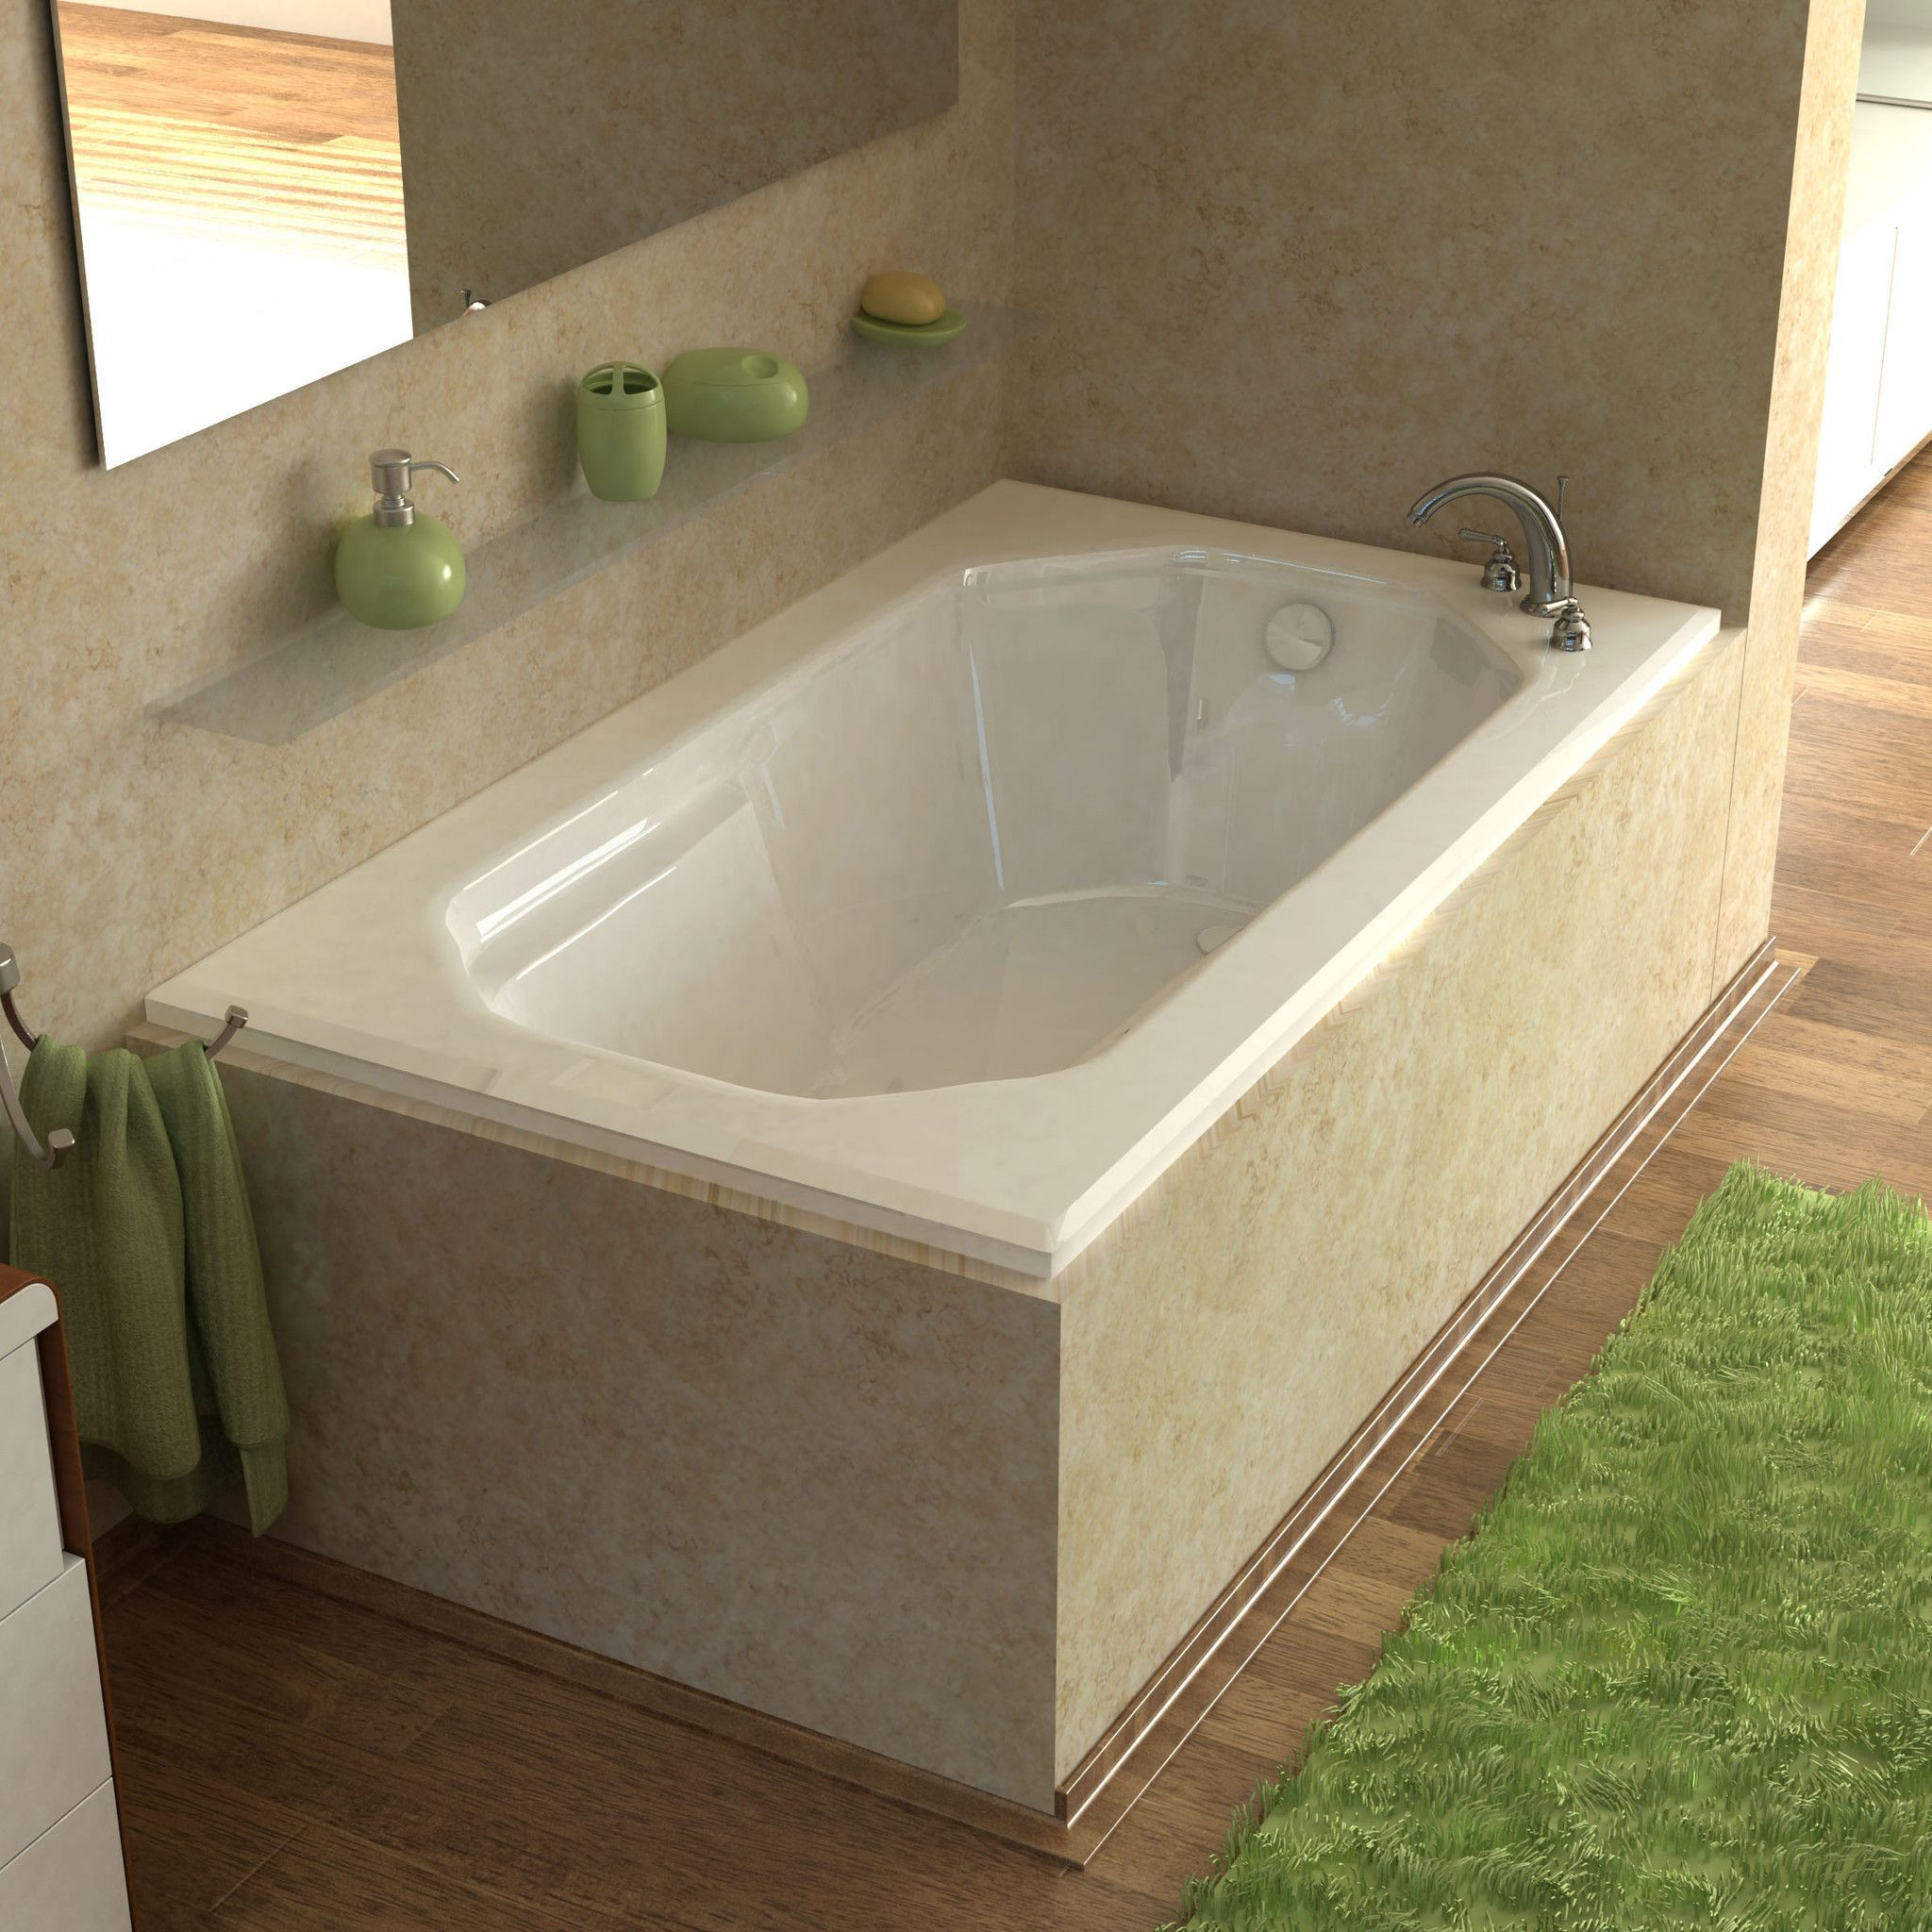 Atlantis Whirlpools 3660M Mirage 36 x 60 Rectangular Soaking Bathtub ...